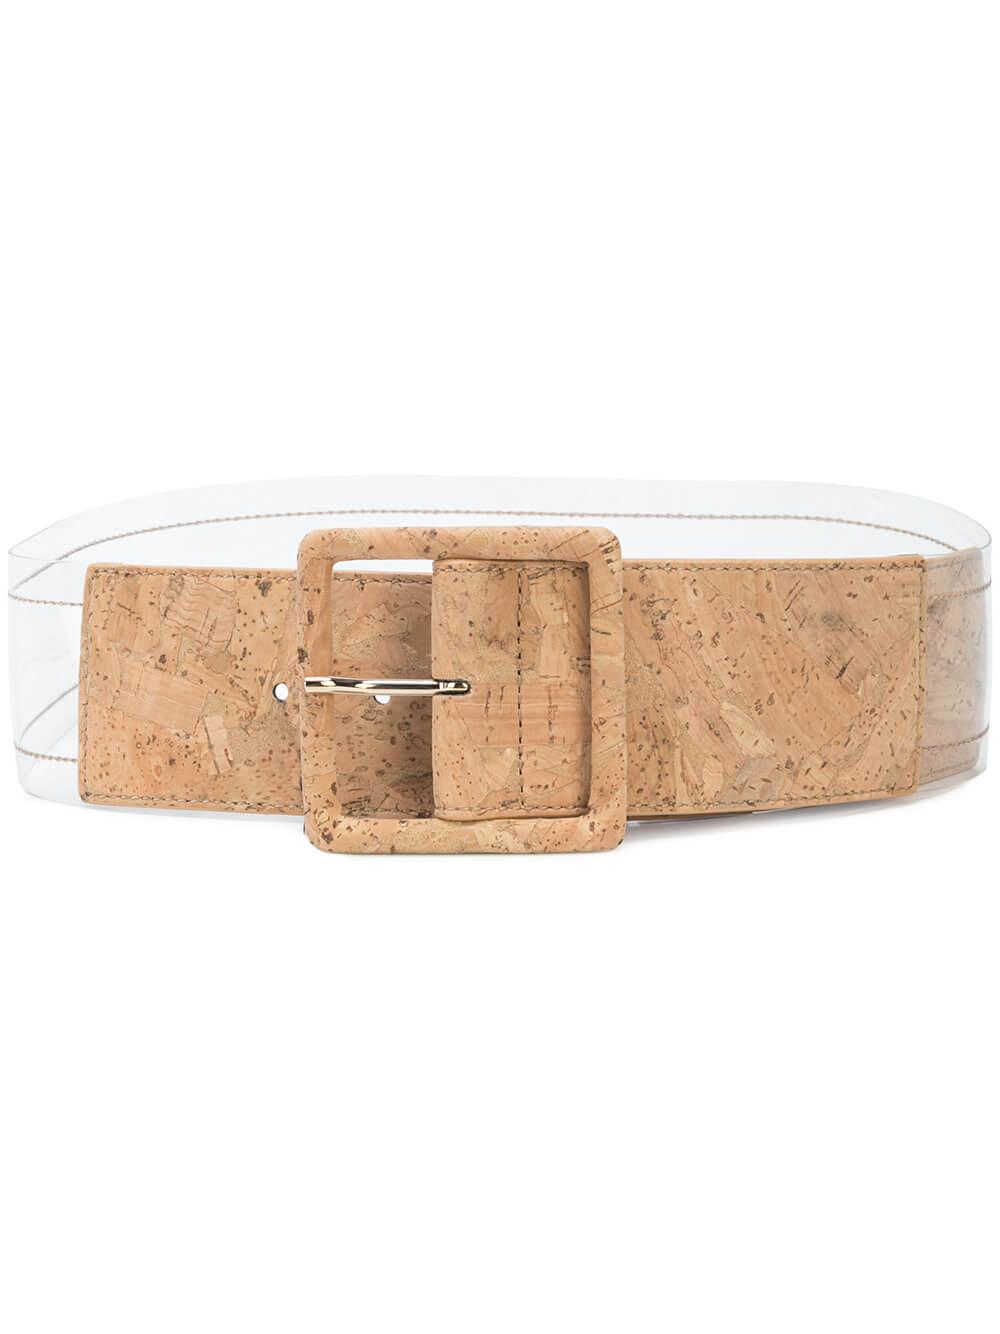 Tinmarie Cork Acetate Belt Item # B200205CO